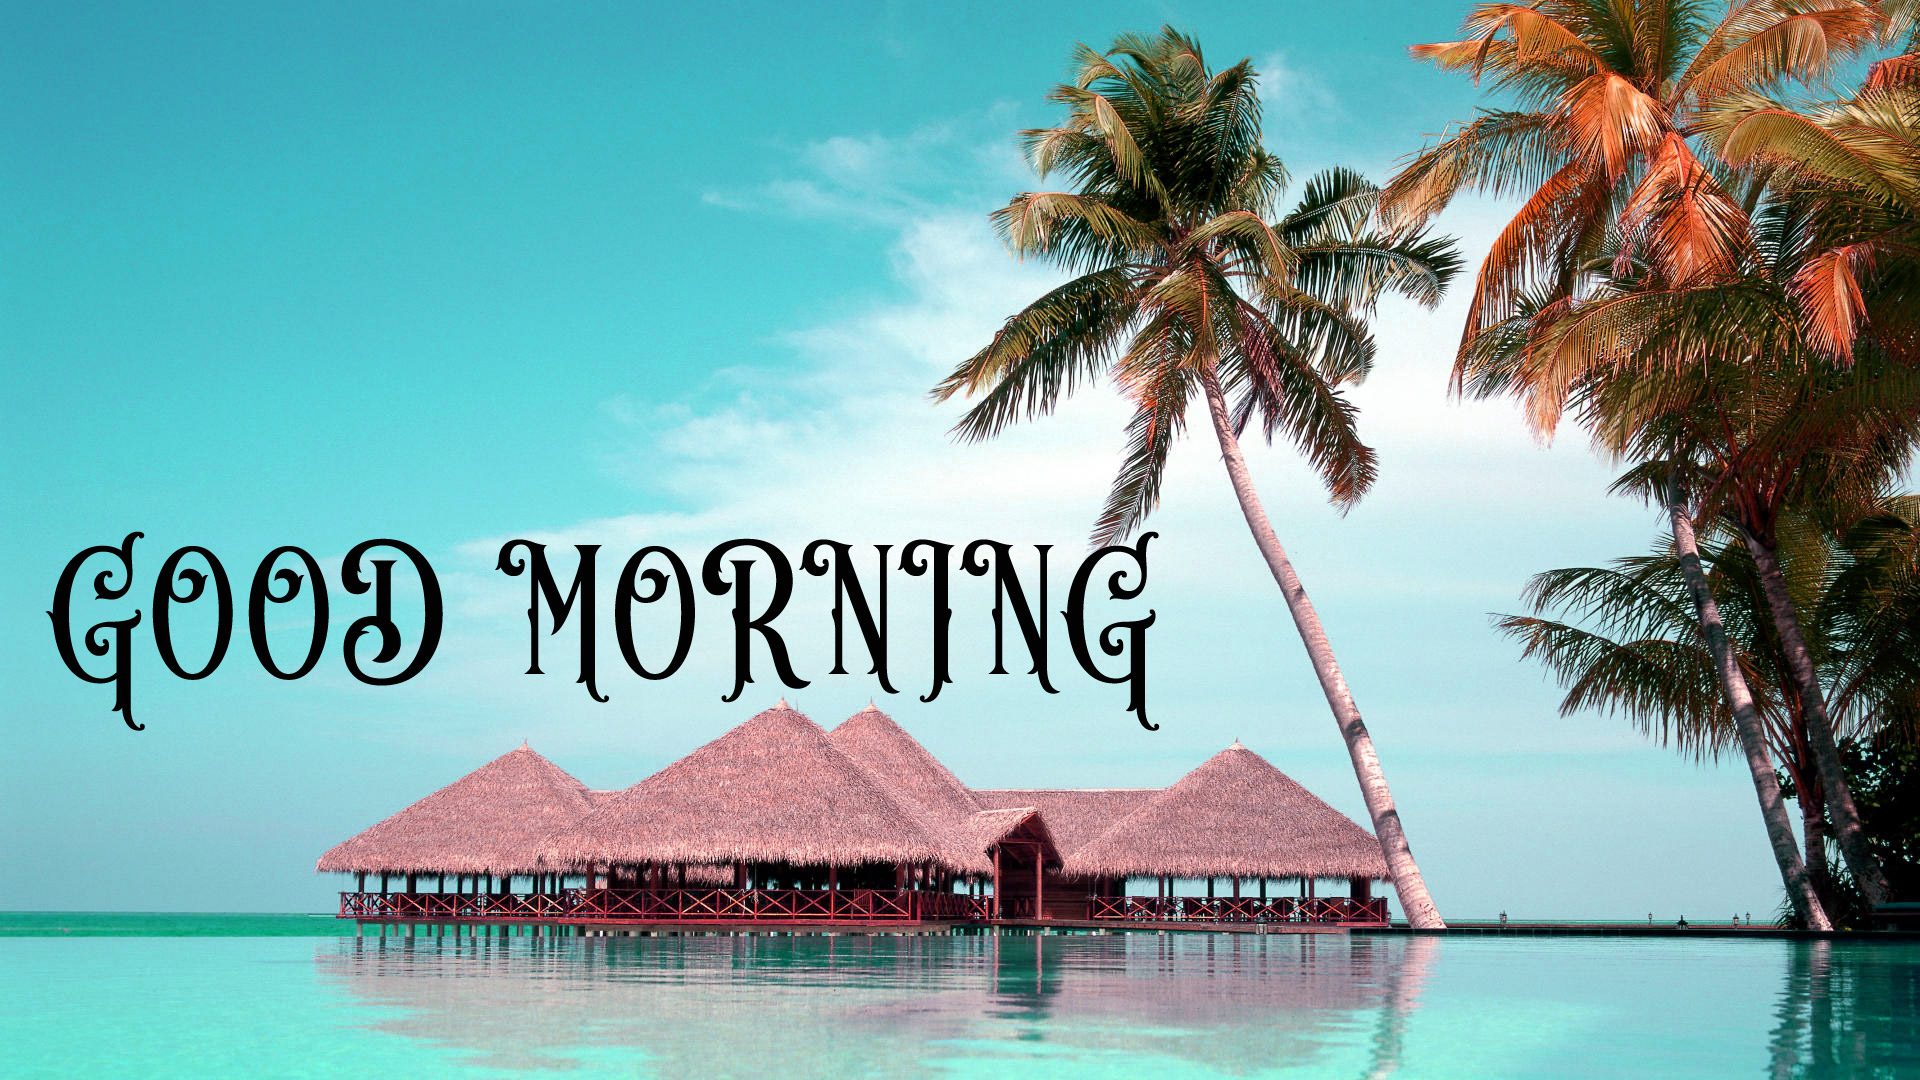 good morning Images for facebook tumblr pinterest and twitter Wallpaper Pics HD Download